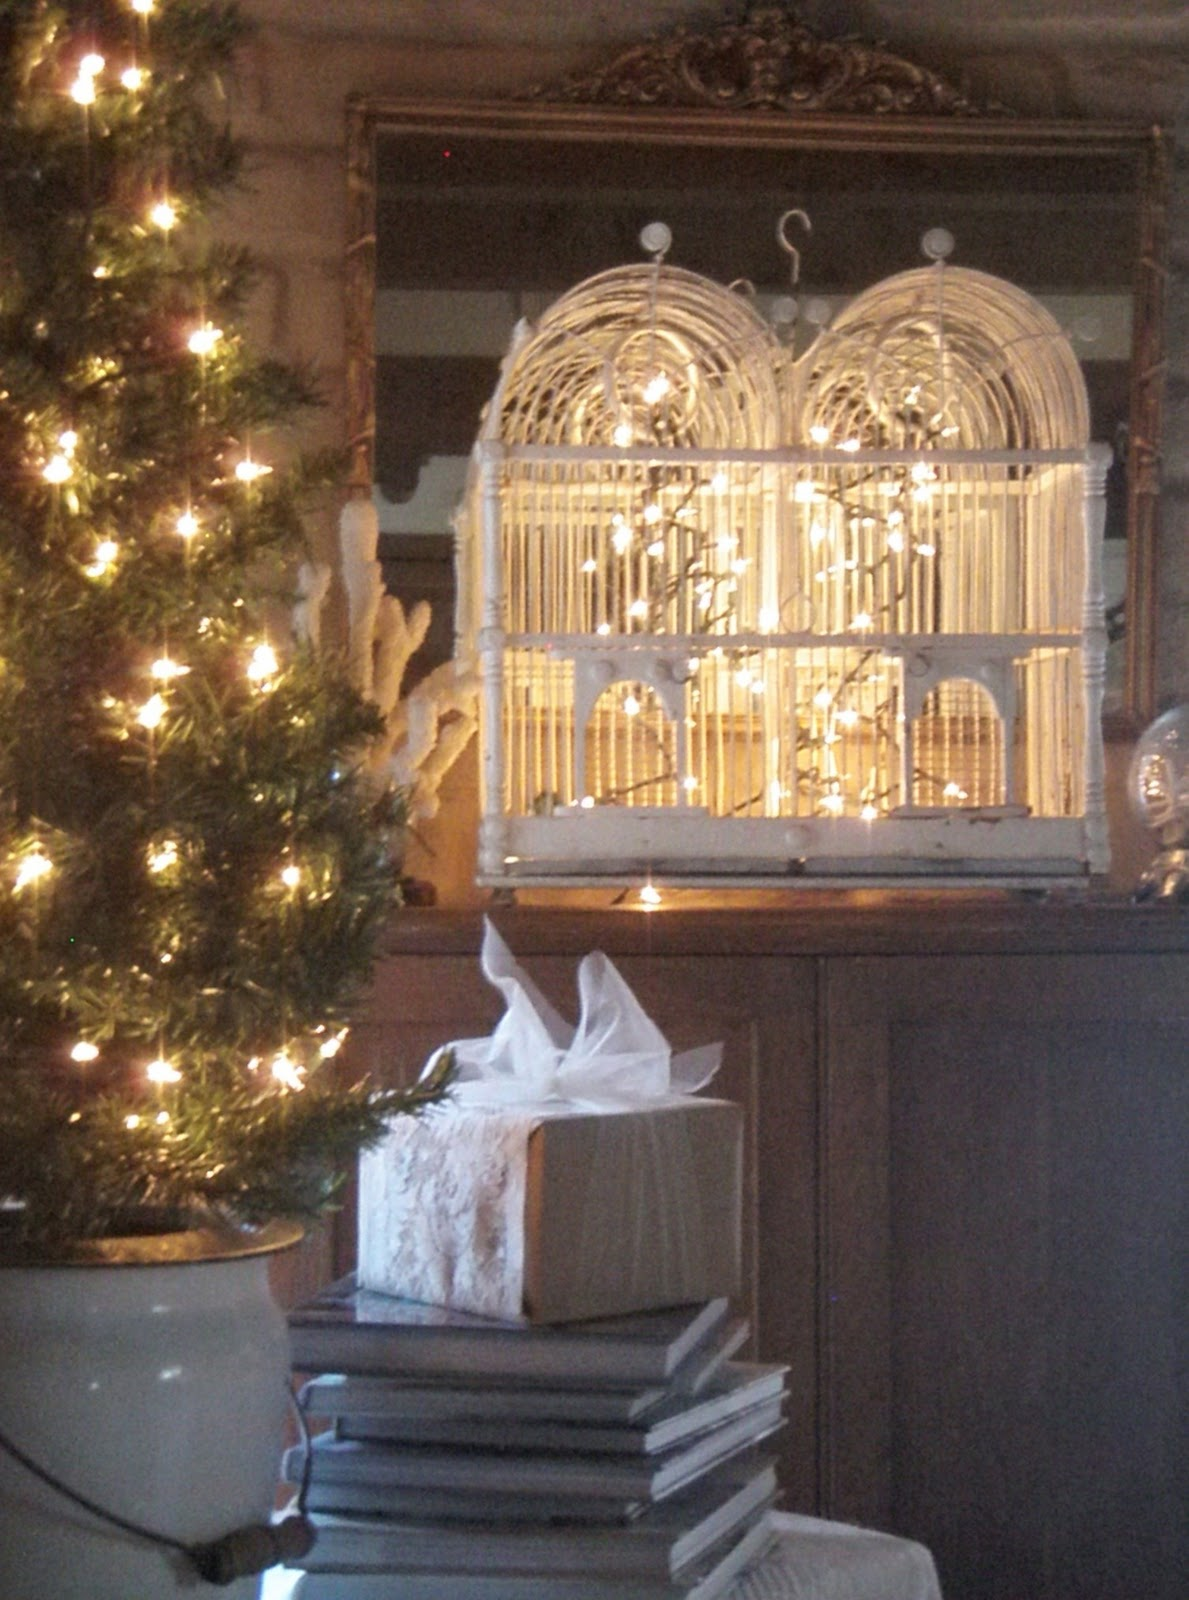 Our Hopeful Home: Christmas Decorating with Vintage Birdcages